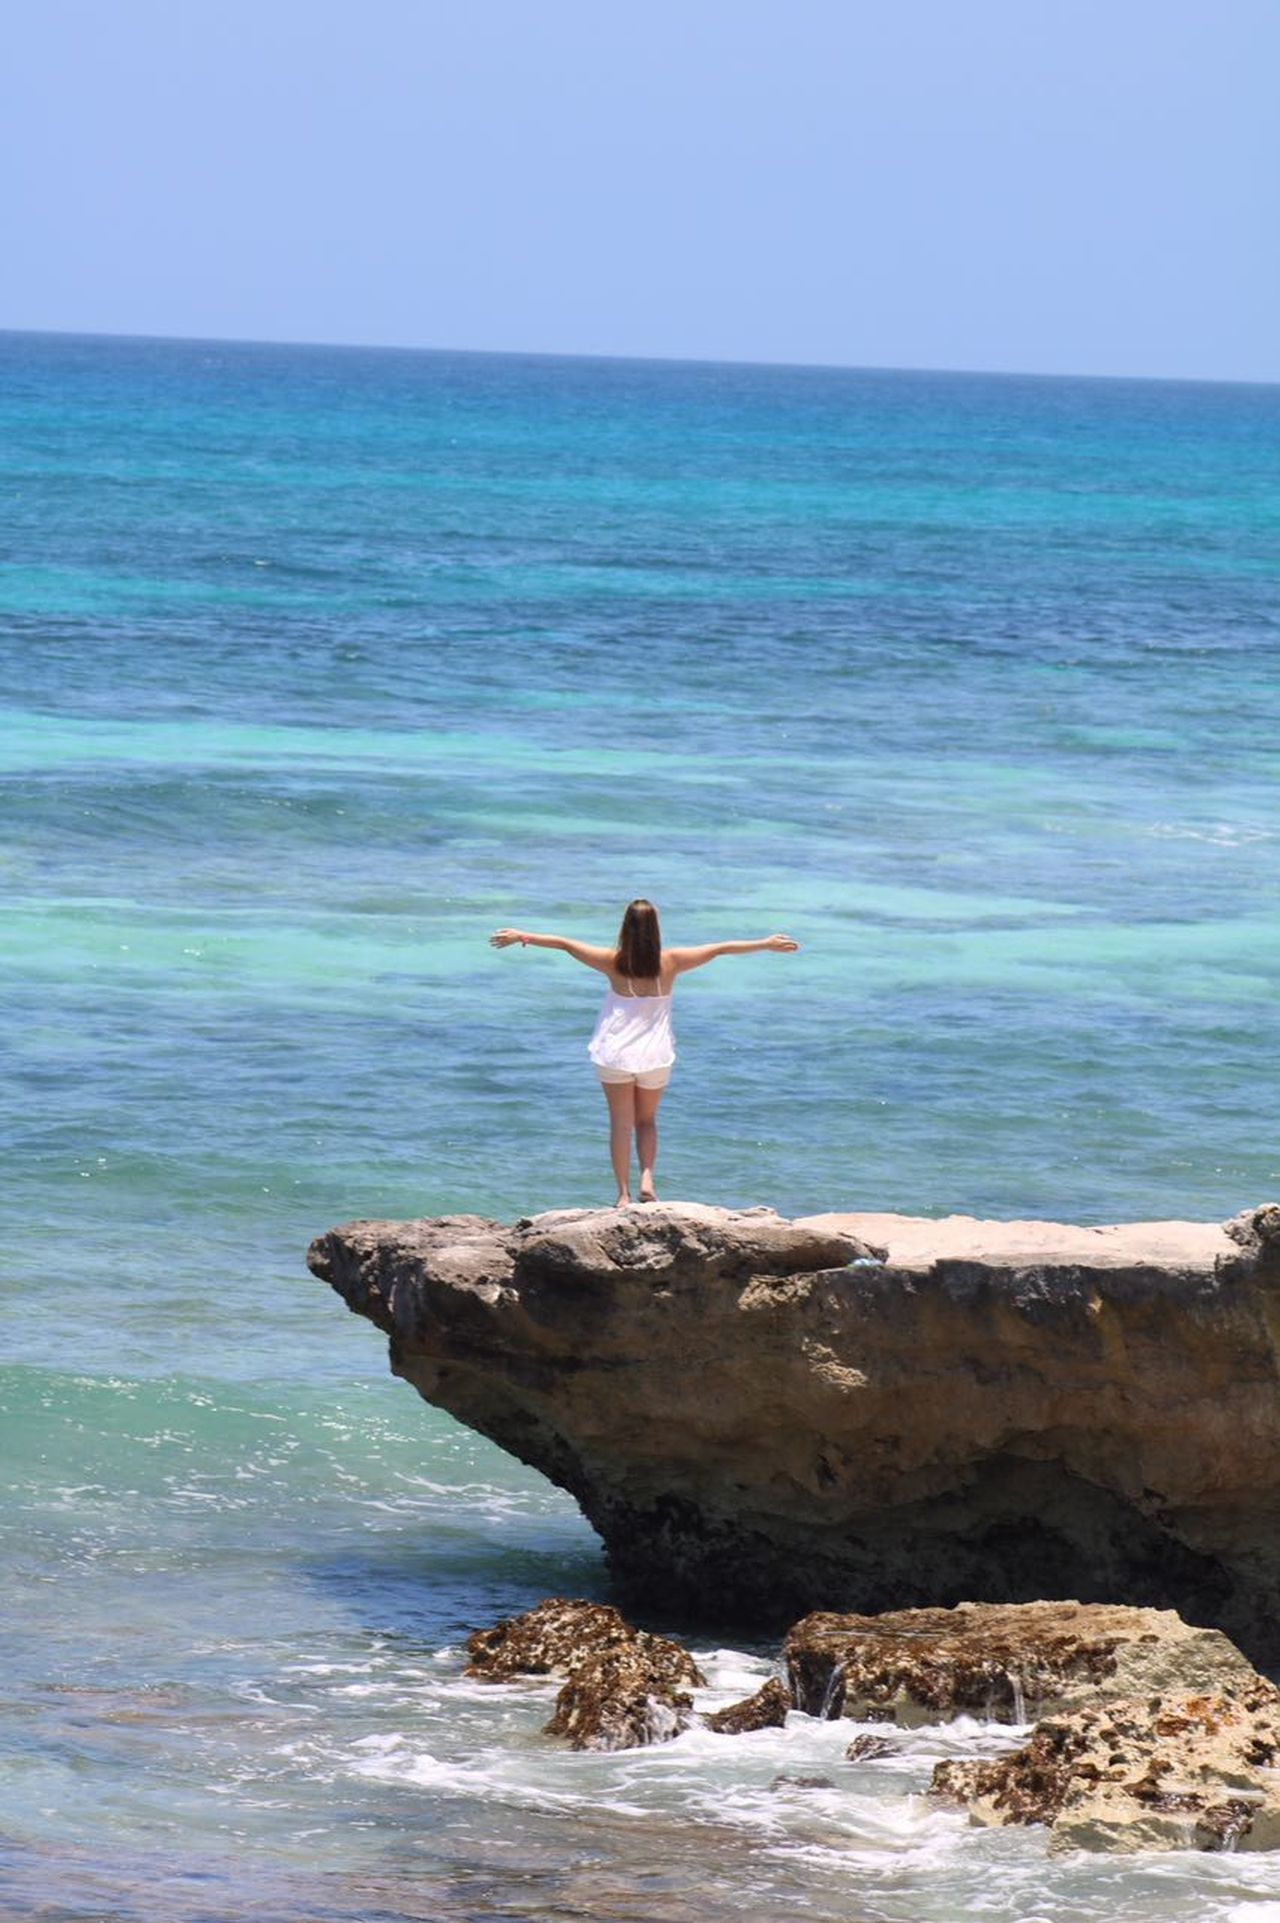 Breathing.. Beach Beach Life Beauty Beauty In Nature Clear Sky Freshness Happiness Healthy Lifestyle Horizon Over Water Isla Mujeres Isla Mujeres Mexico Leisure Activity Mexico Nature Outdoors Peaceful View Relaxation Sea Serene People Sky Tranquil Scene Water Women